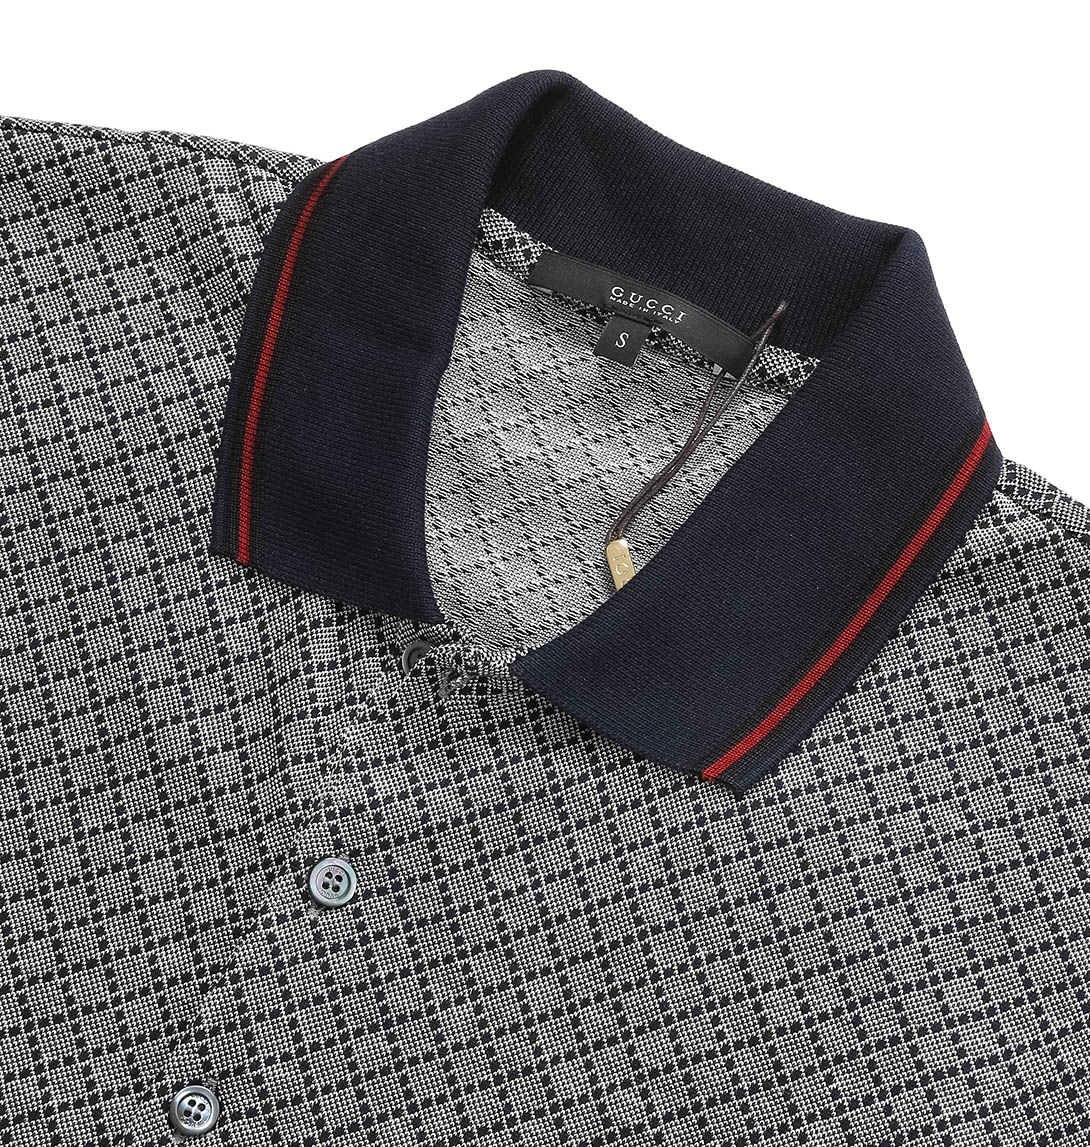 Best Selling Luxurious Polo Shirt Brands